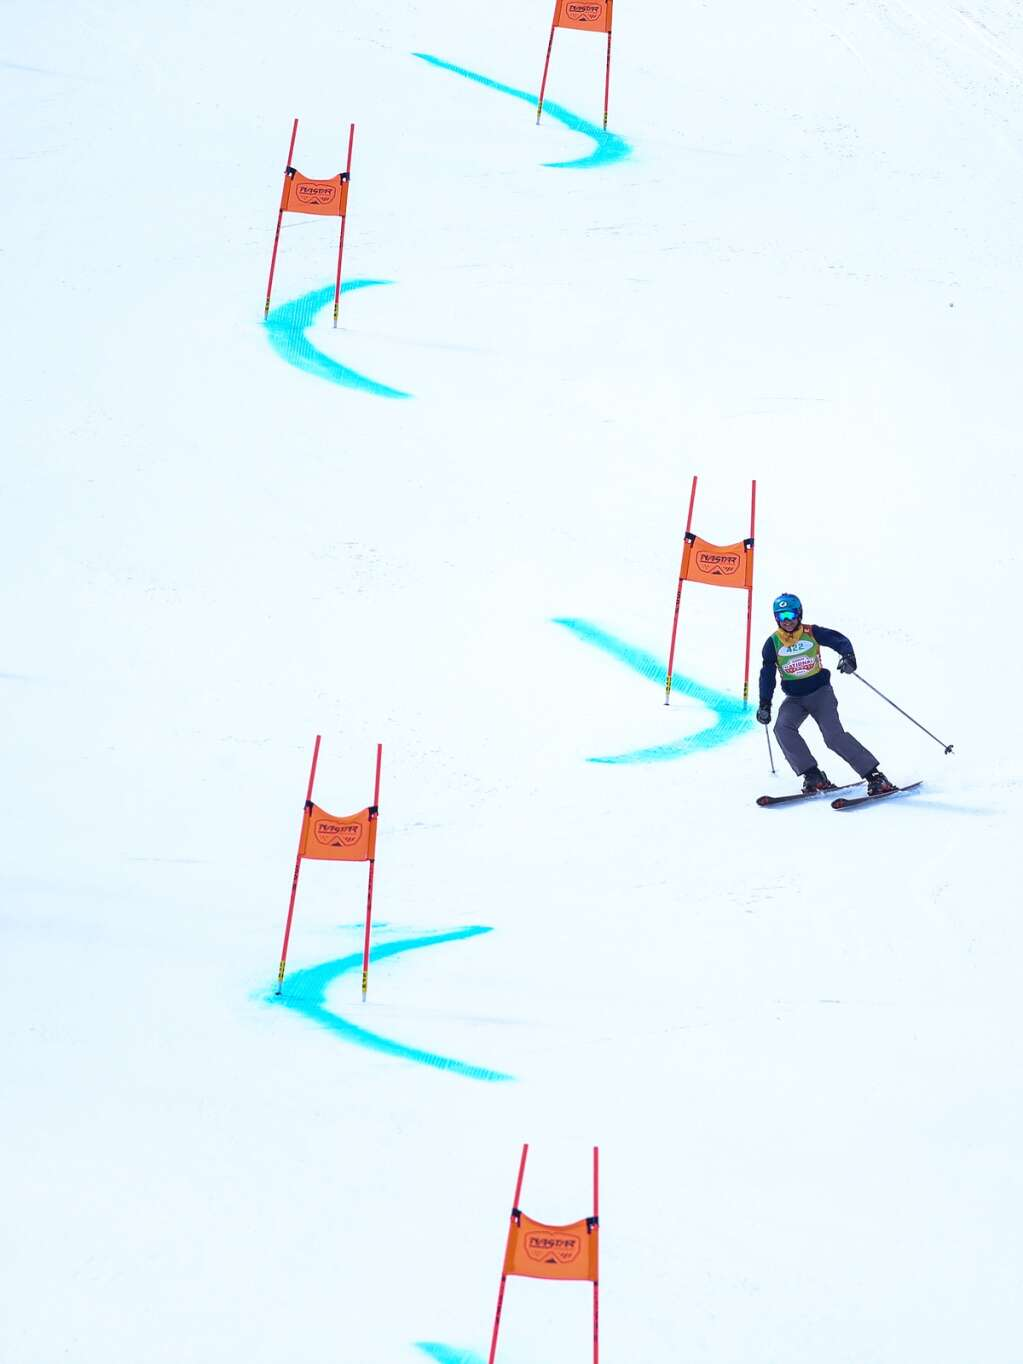 Gary Hughes, of Jemez Springs, New Mexico, skis on the giant slalom course at NASTAR national championships on April 7, 2021, at Snowmass Ski Area. | Austin Colbert/The Aspen Times